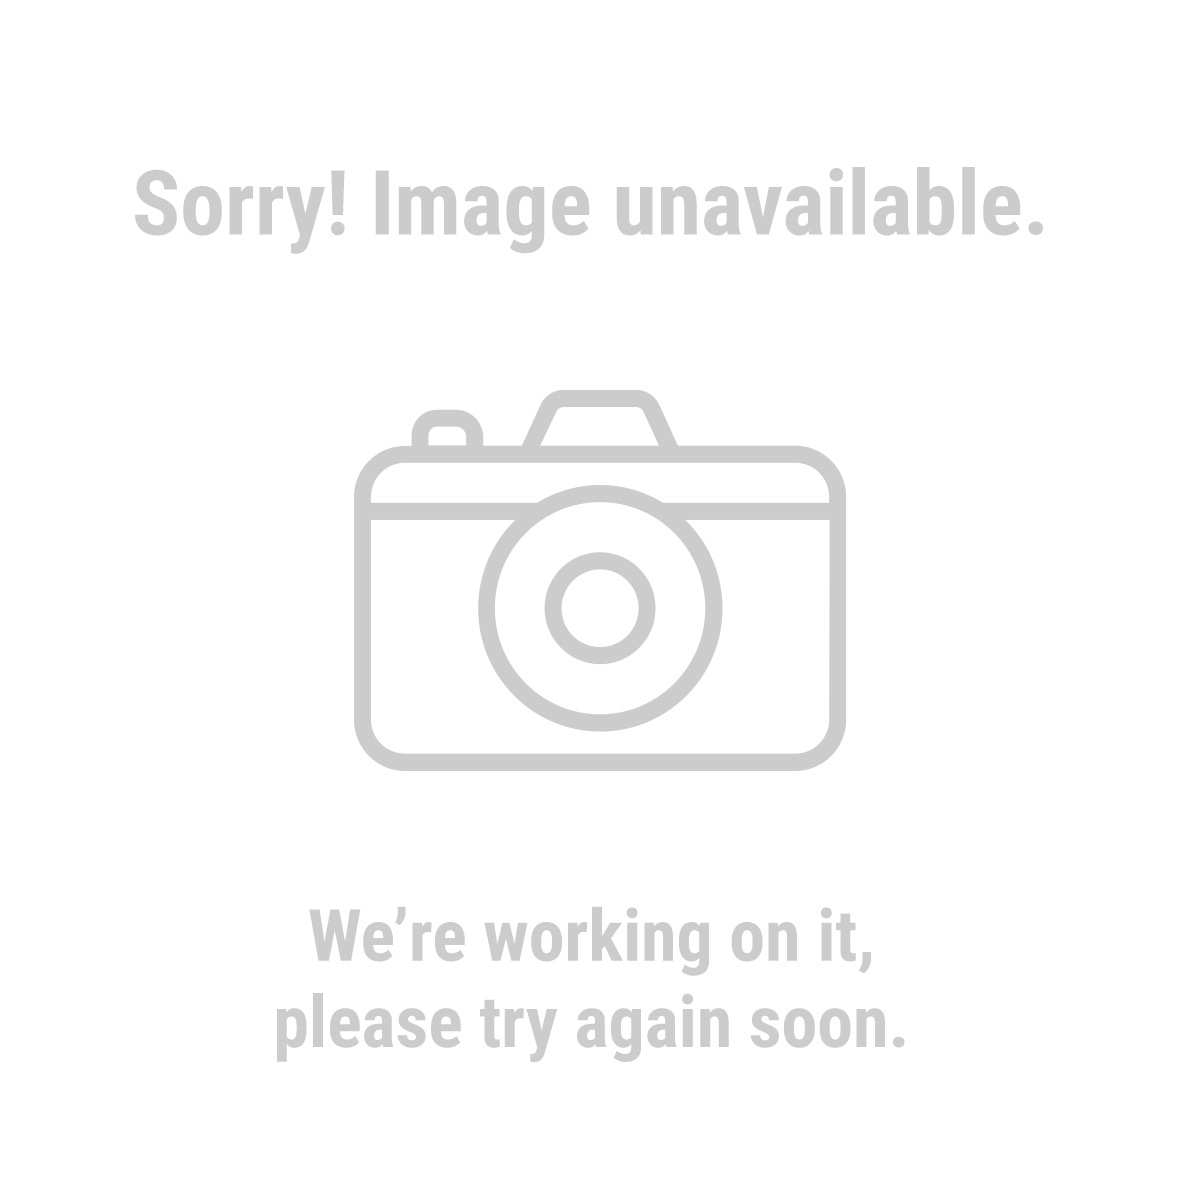 HFT 61607 4 Piece Anti-Fatigue Foam Mat Set